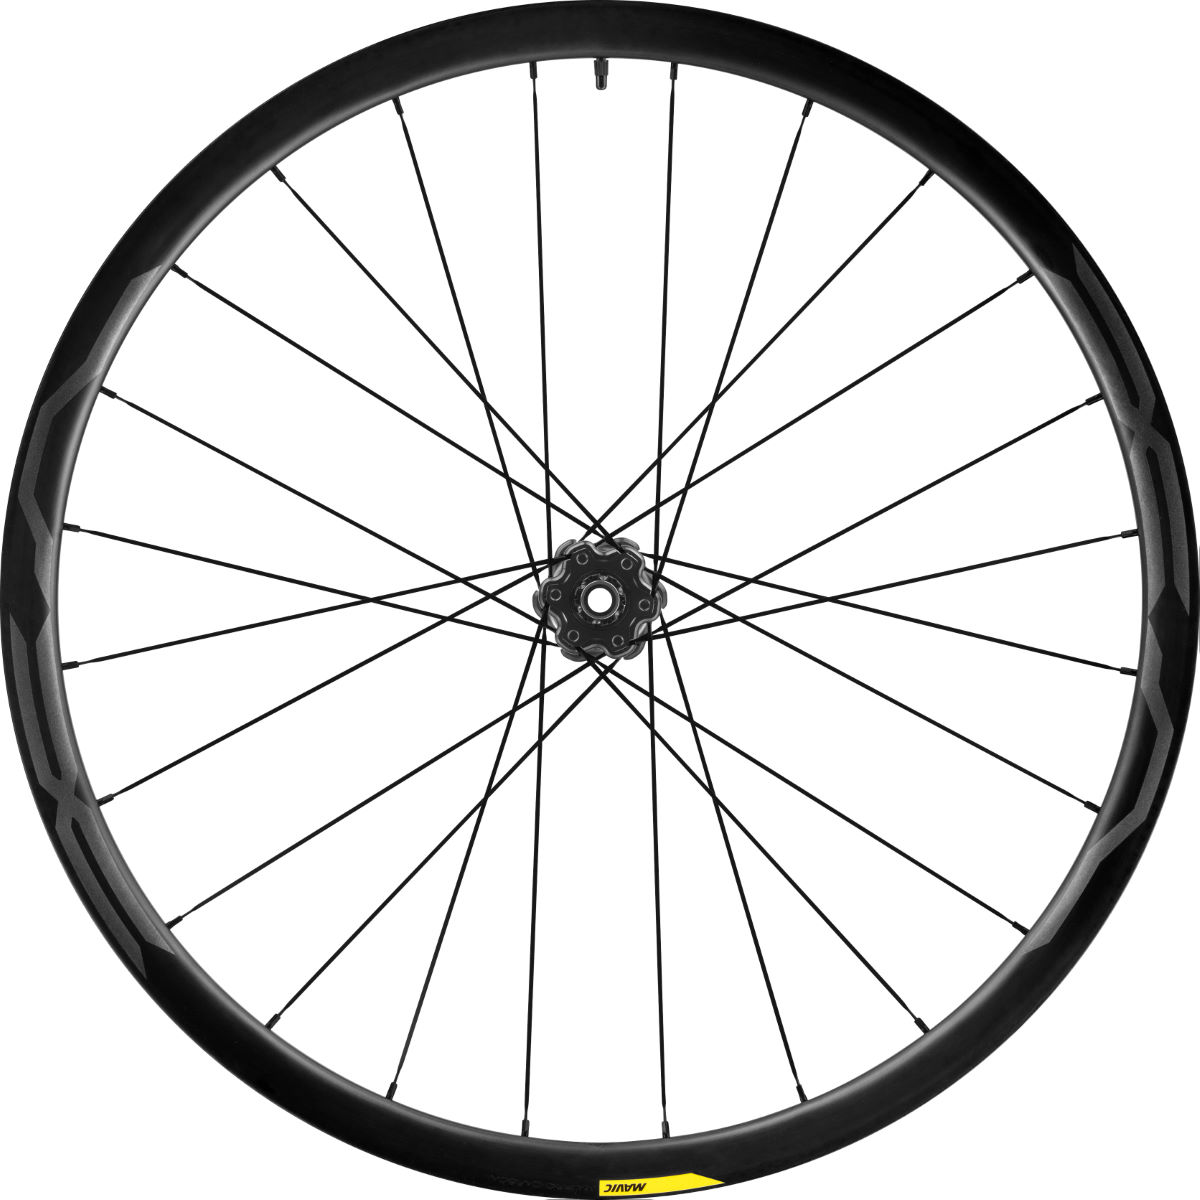 Mavic XA Pro Carbon Rear XD MTB Wheel - Rear wheels